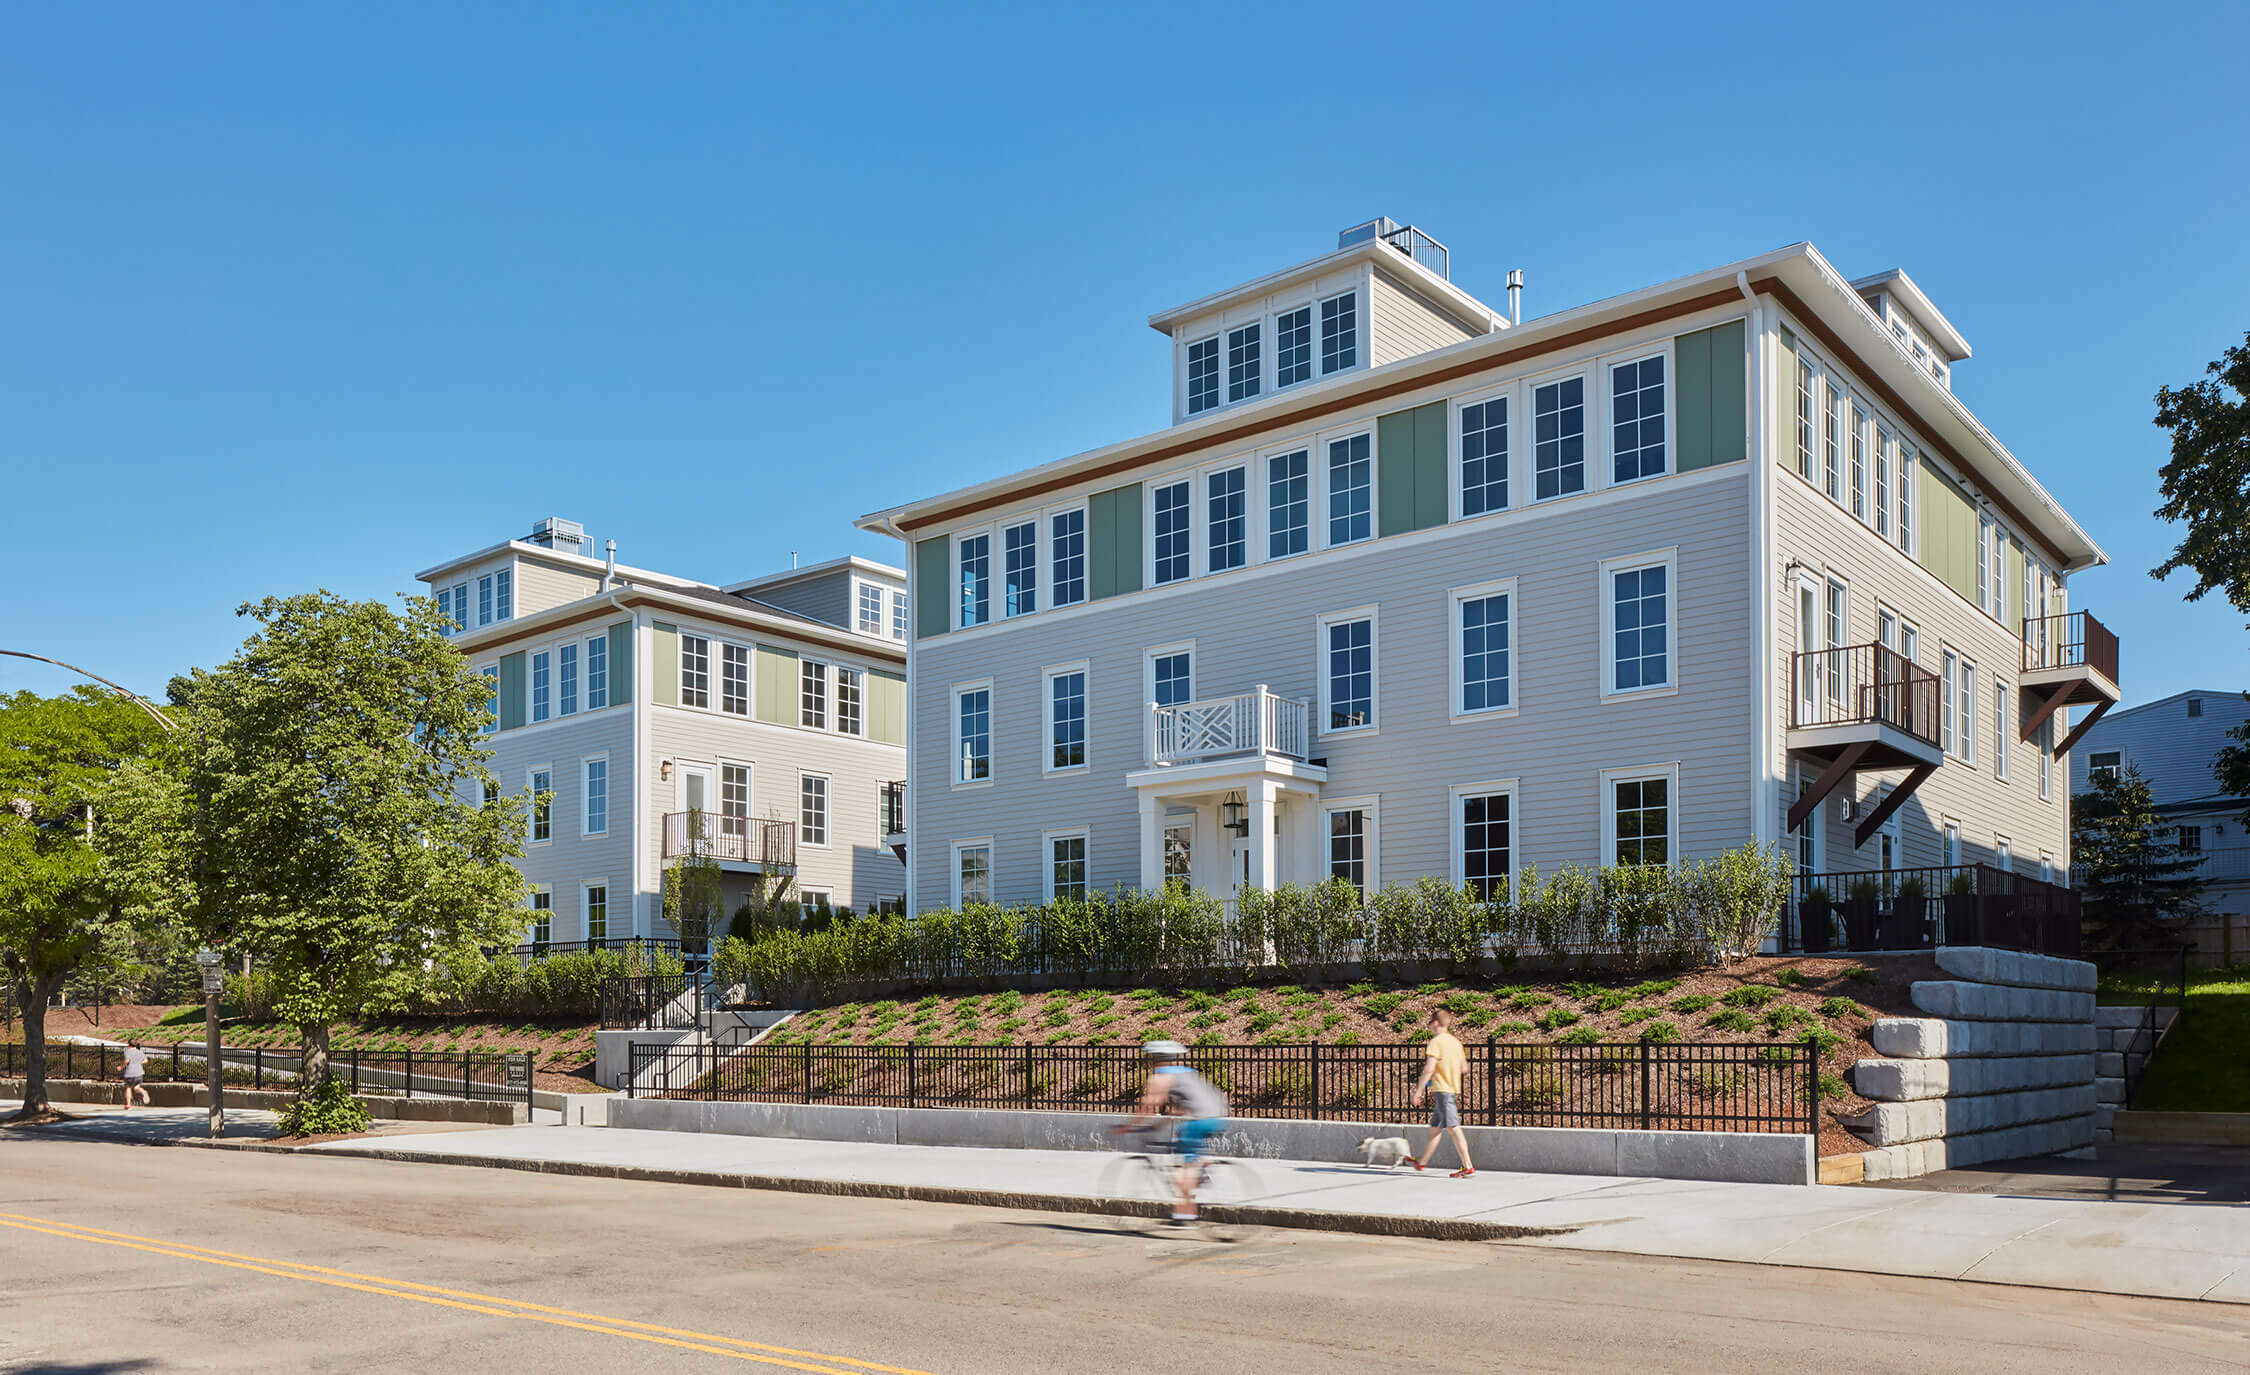 View across the street of 945 East Broadway Street, two large buildings with a wooden, residential feel.